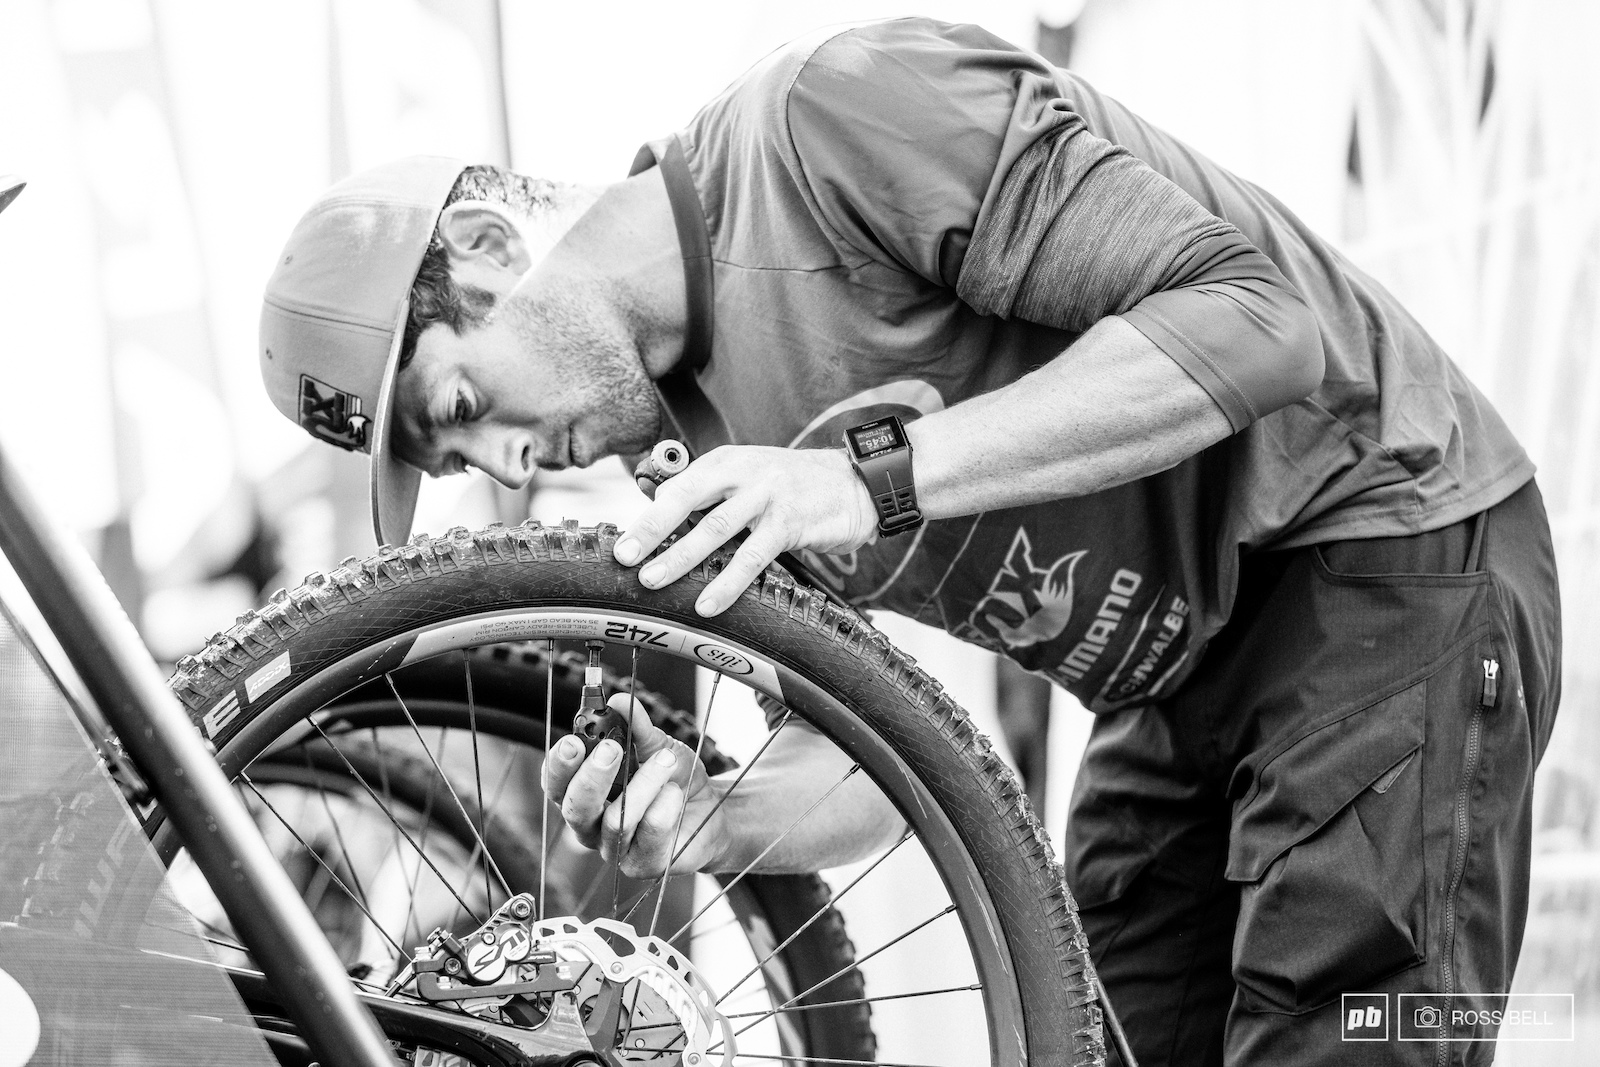 Tire choice and pressures were an important thought process overnight. The experienced Frenchie Francois Bailly-Maitre makes a last check before heading for the start ramp.